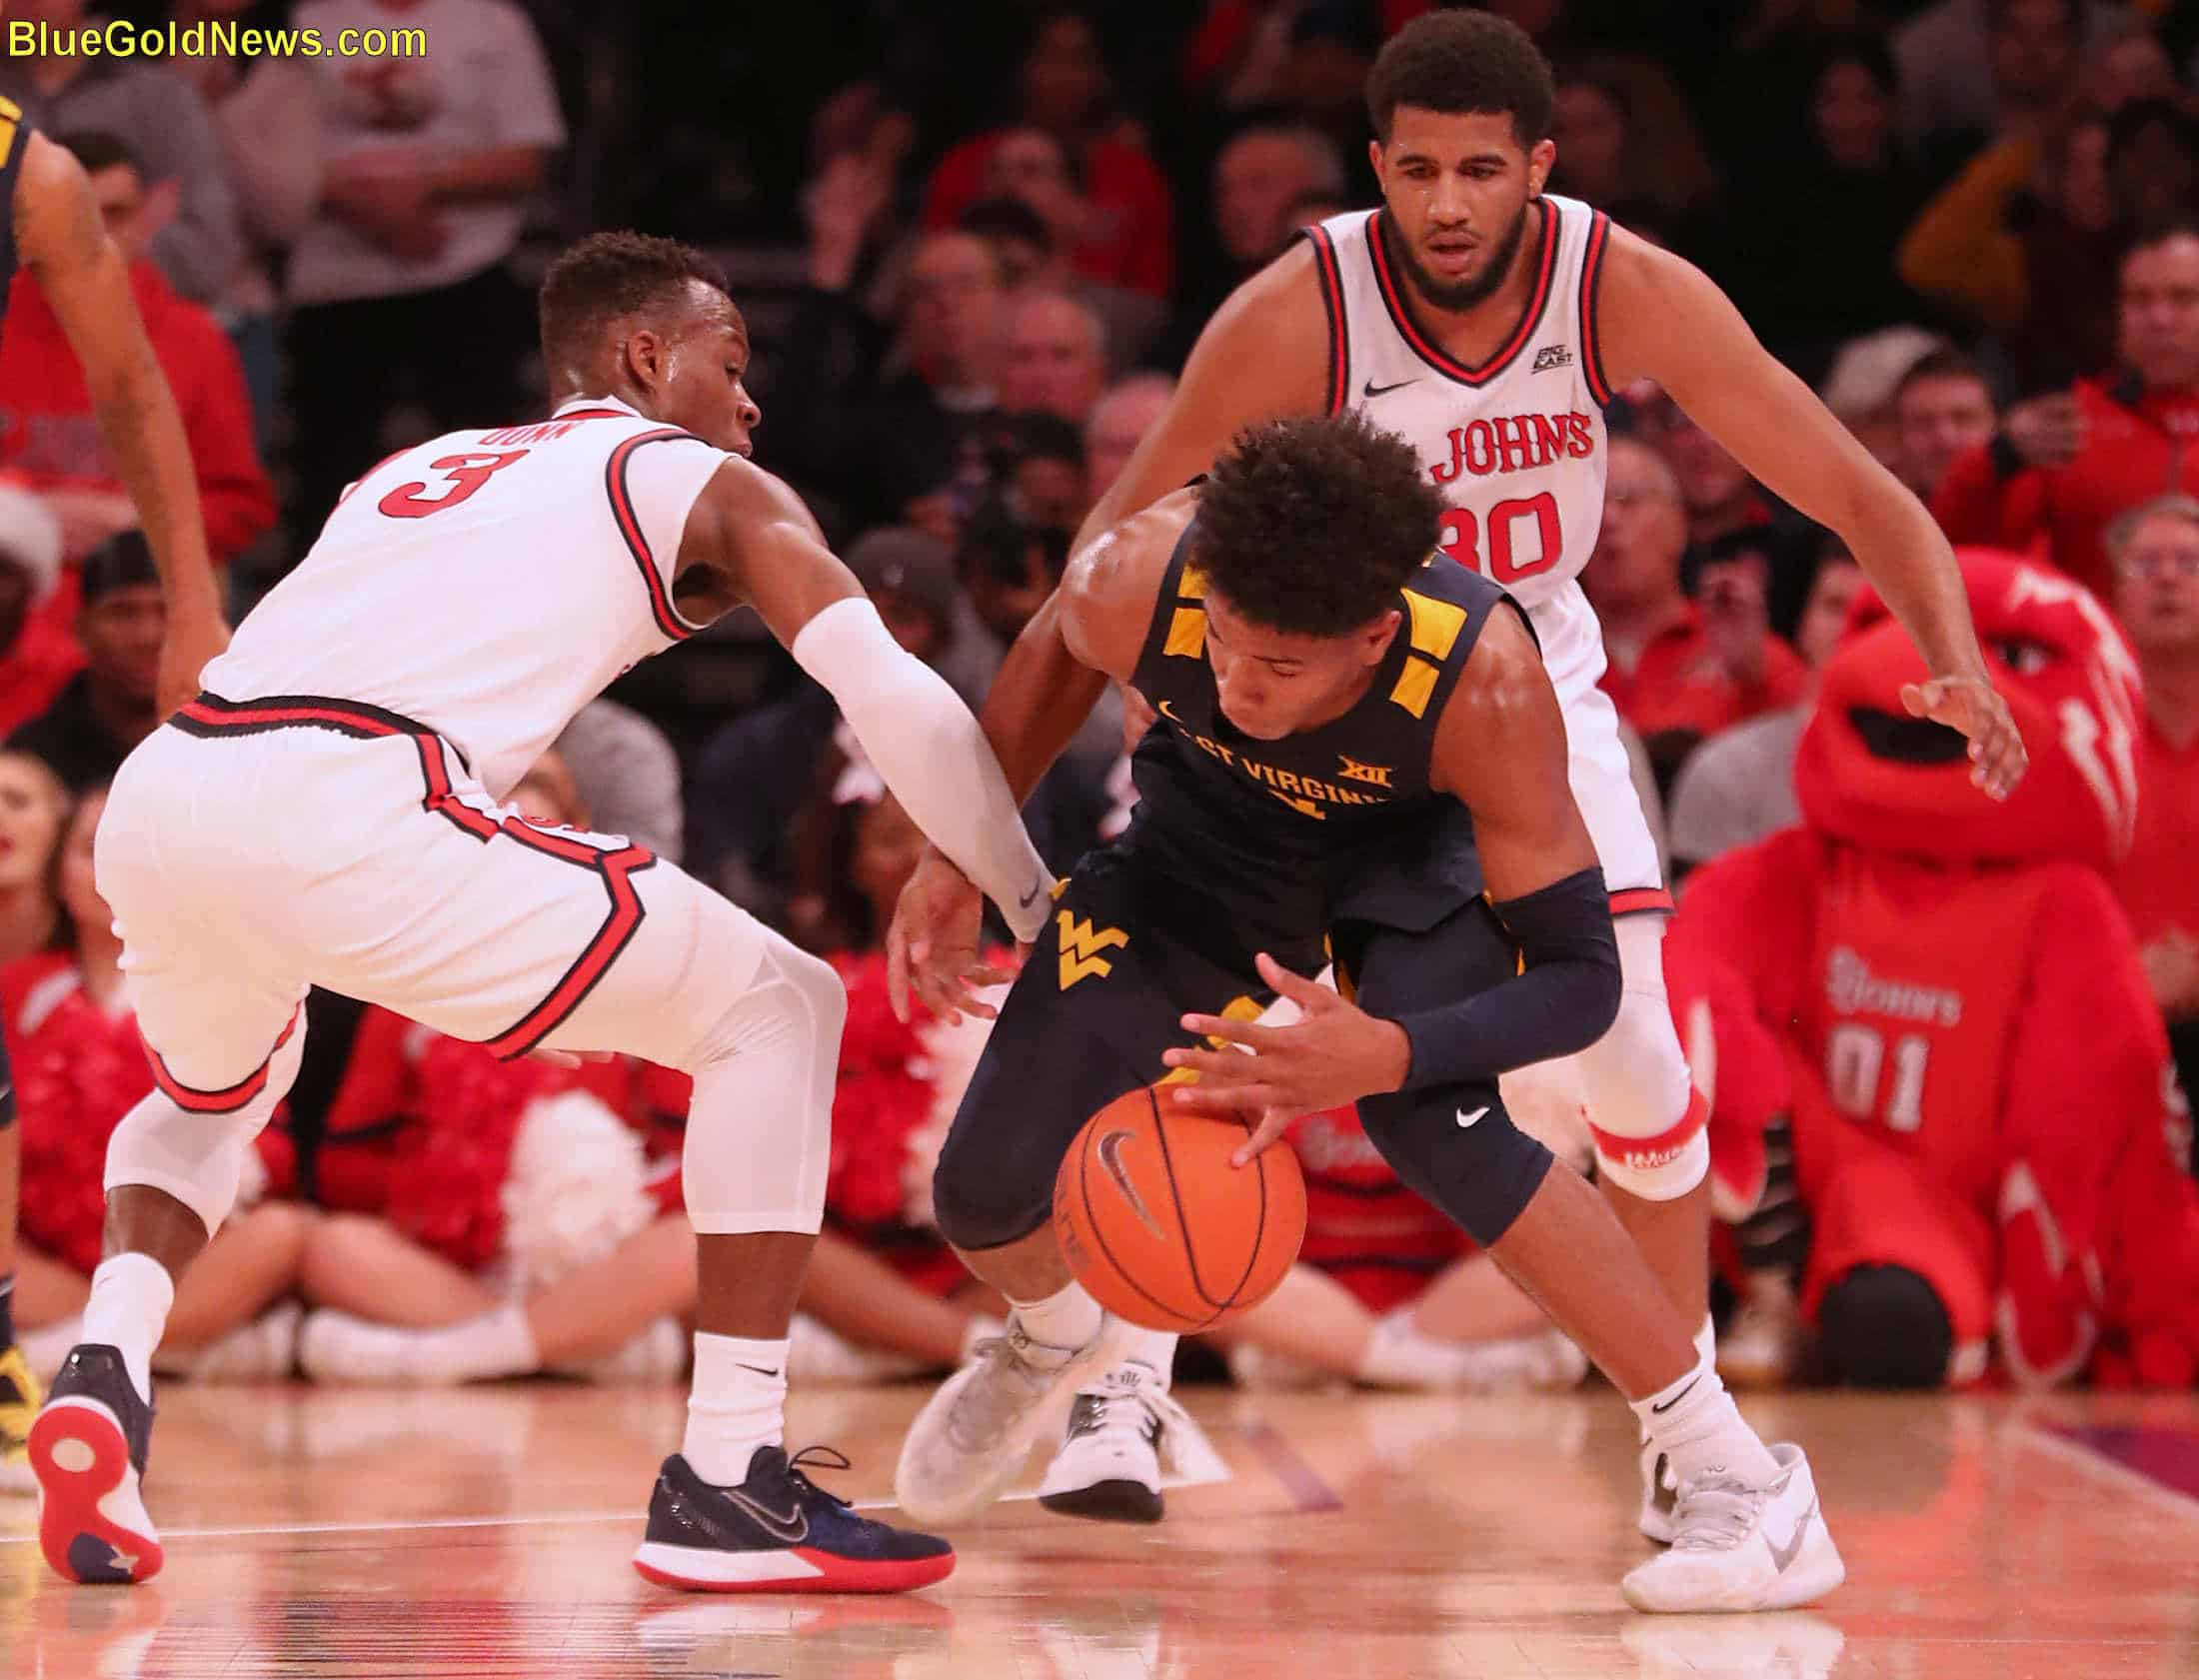 West Virginia guard Deuce McBride comes up with one of WVU's few loose ball wins